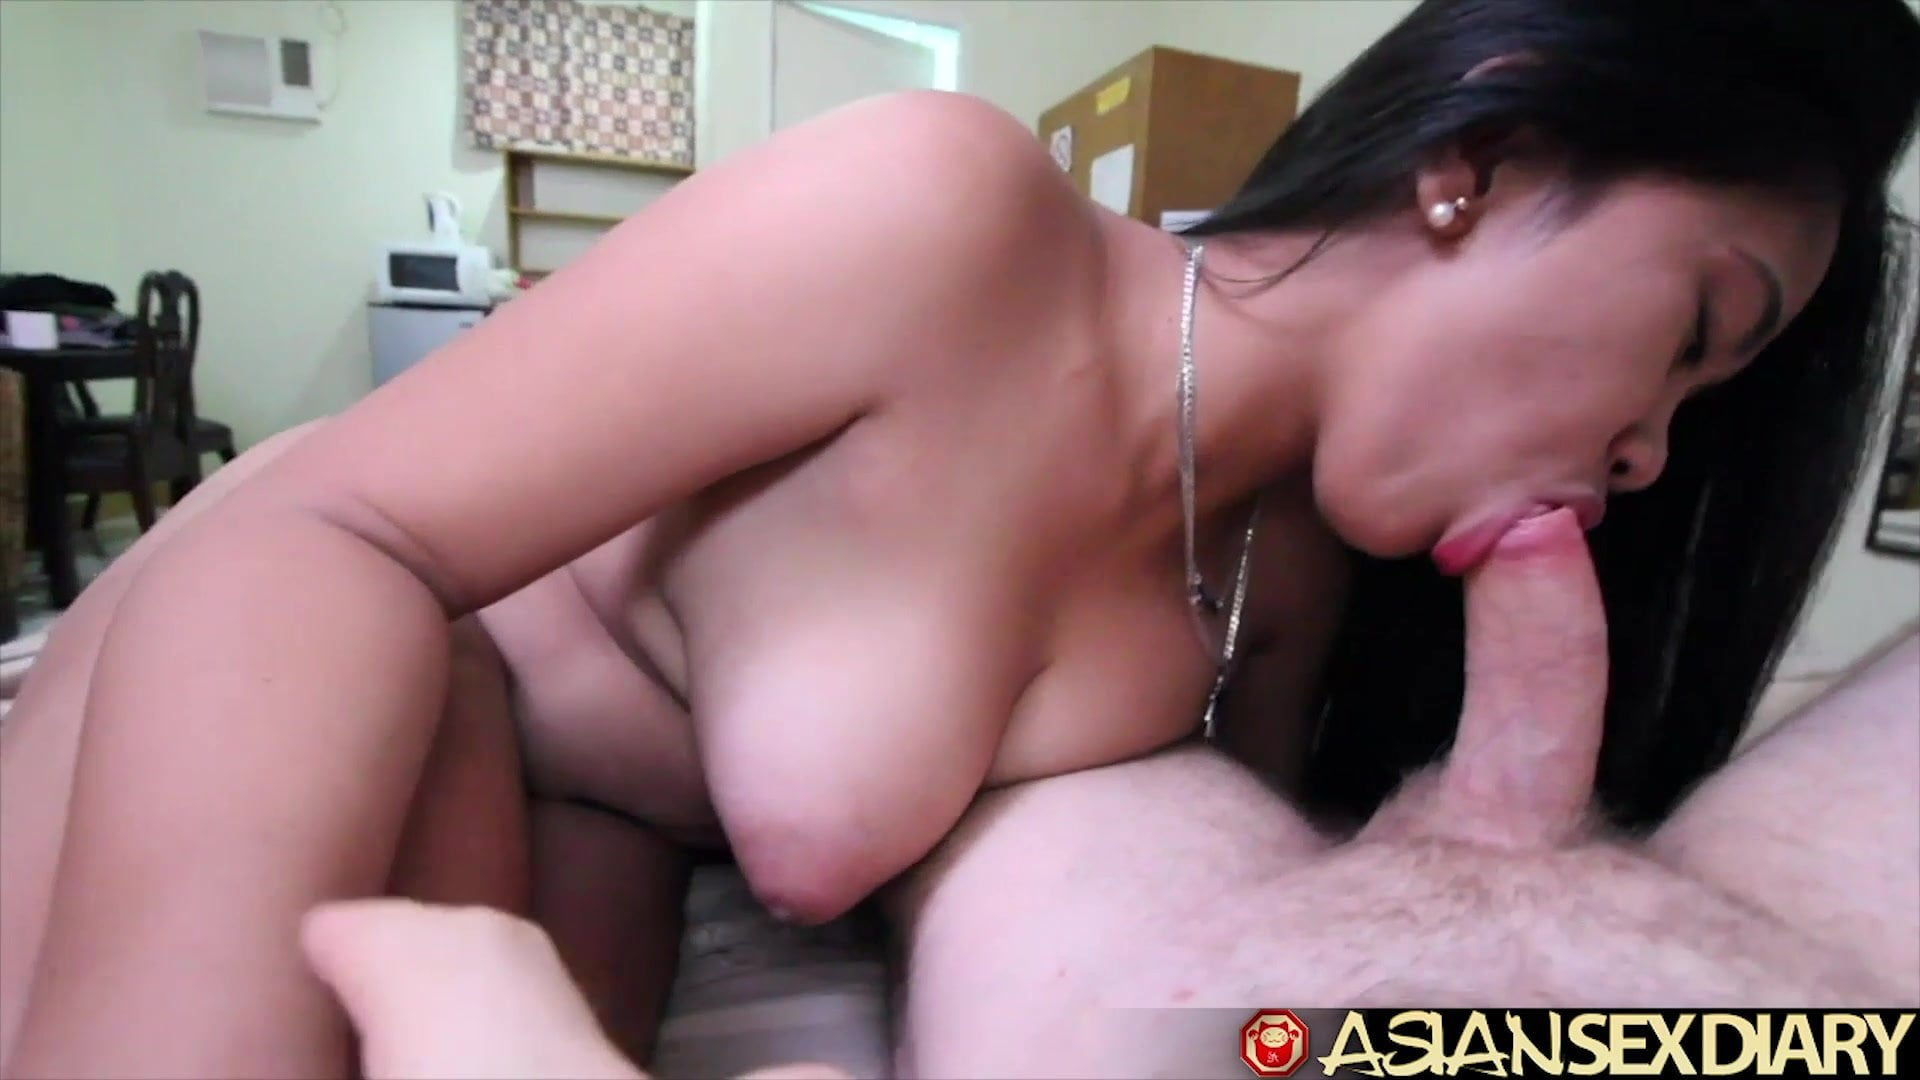 submissive girls porn